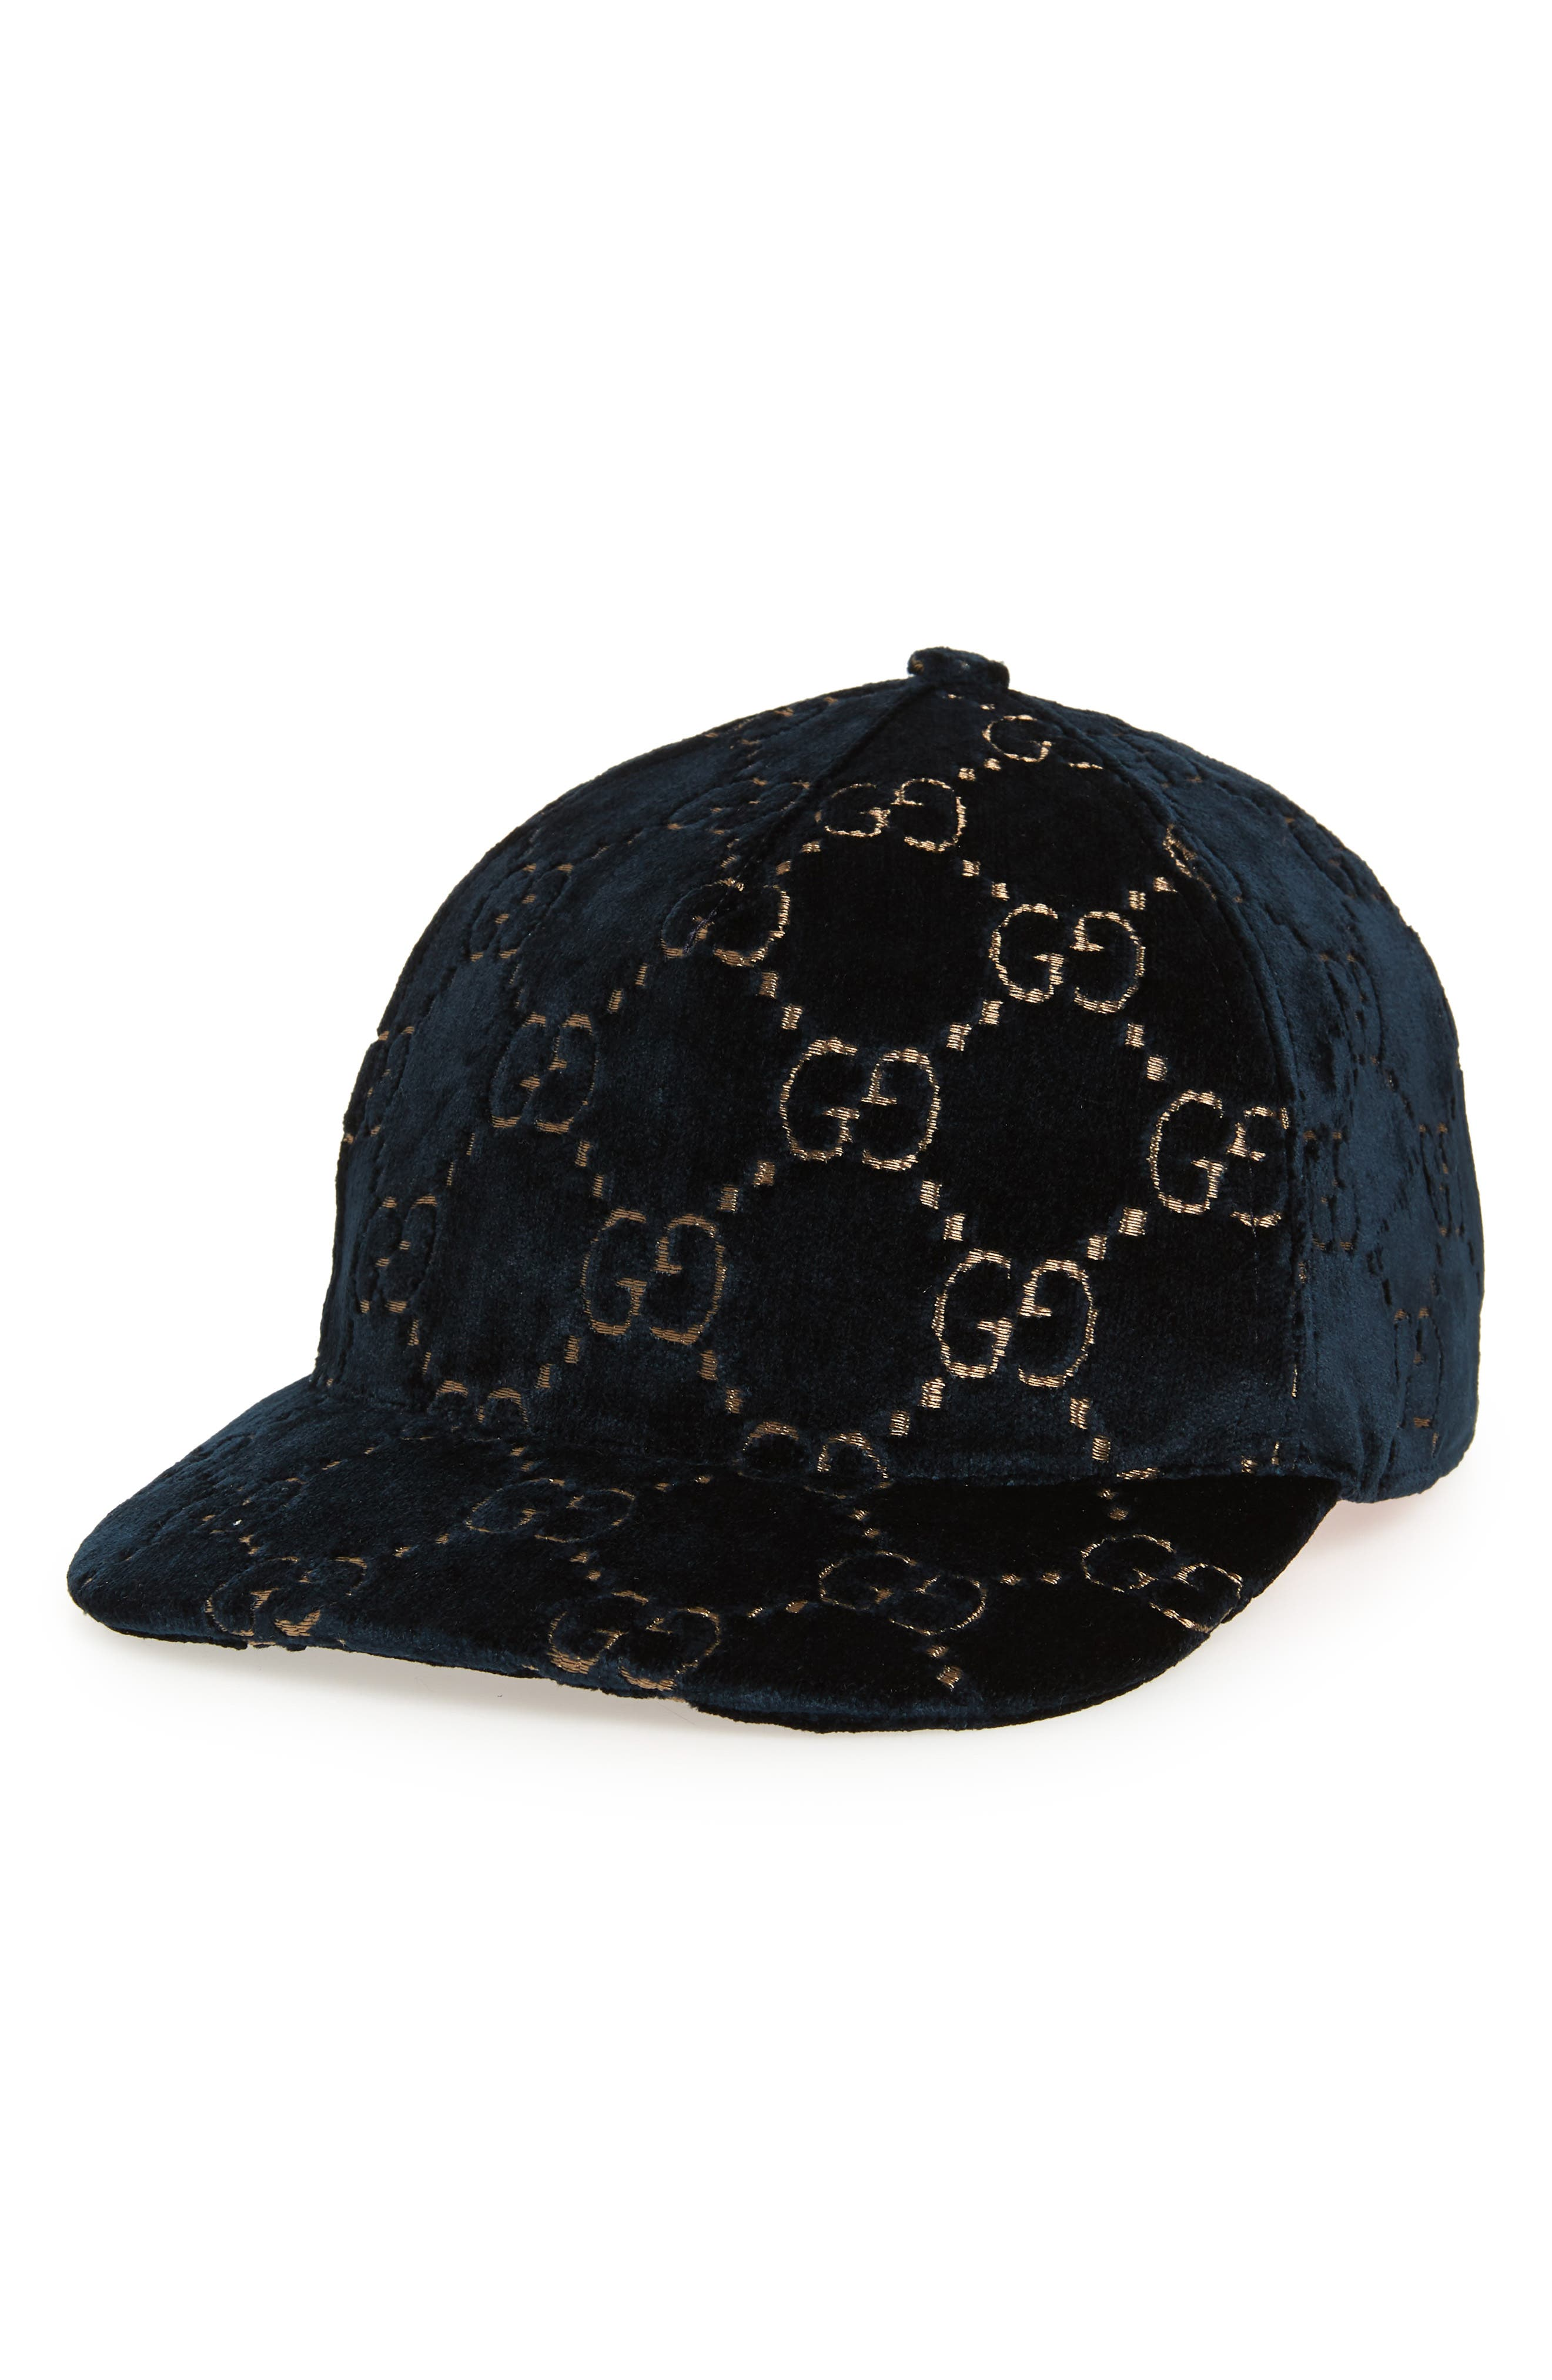 759b34bd490 Gucci Hats for Women